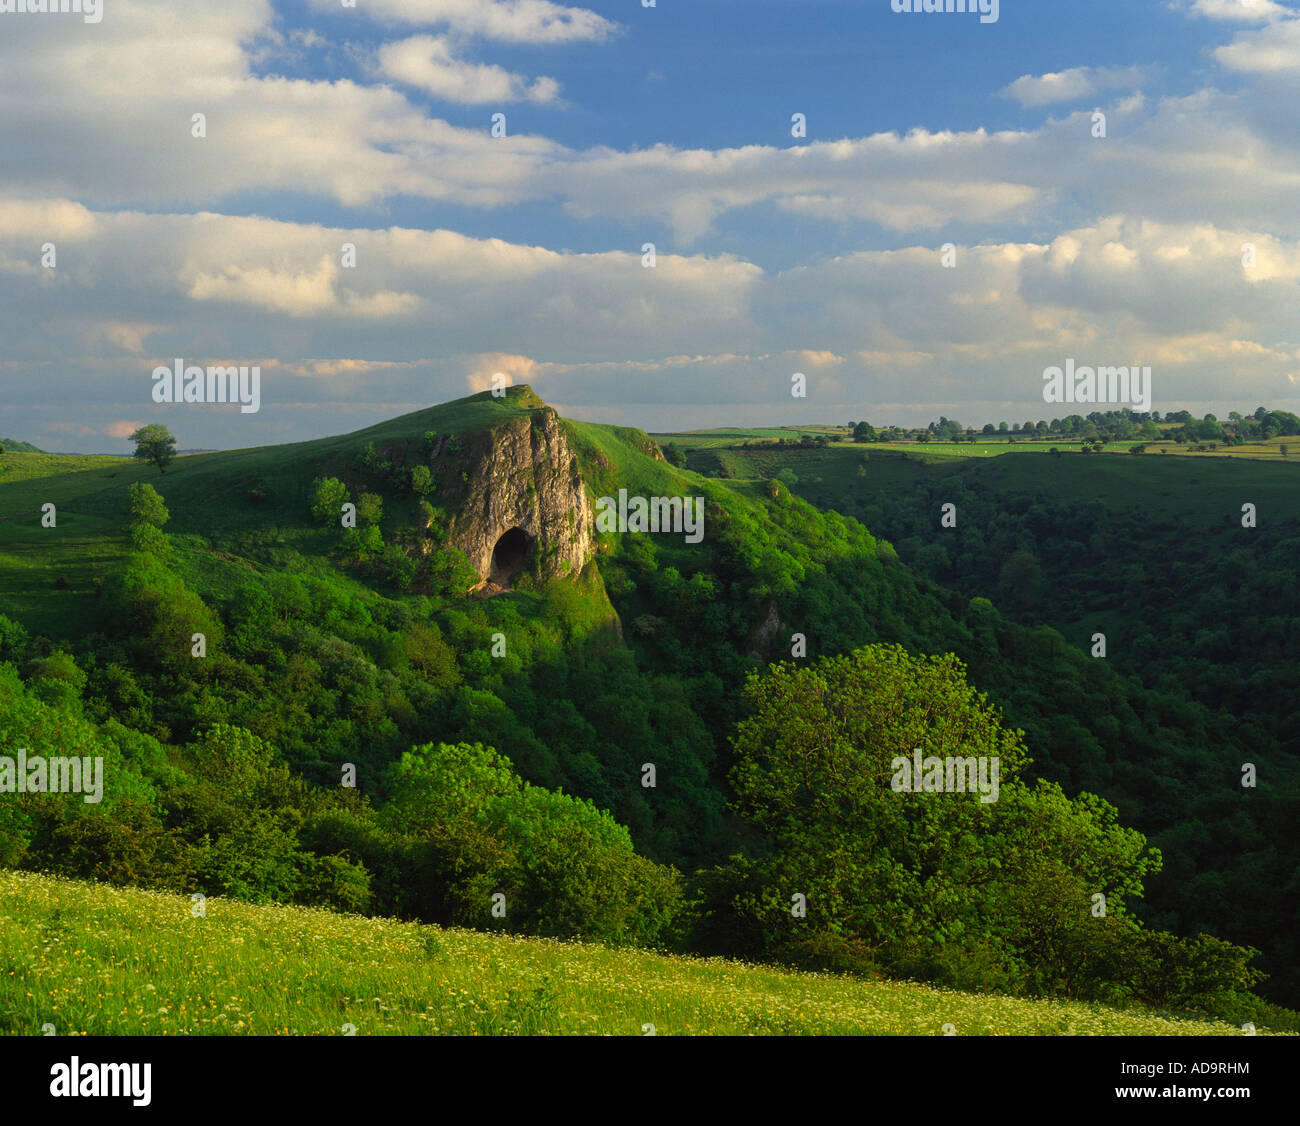 Thor's Cave, Manifold Valley, Peak District National Park, Staffordshire, England Stock Photo